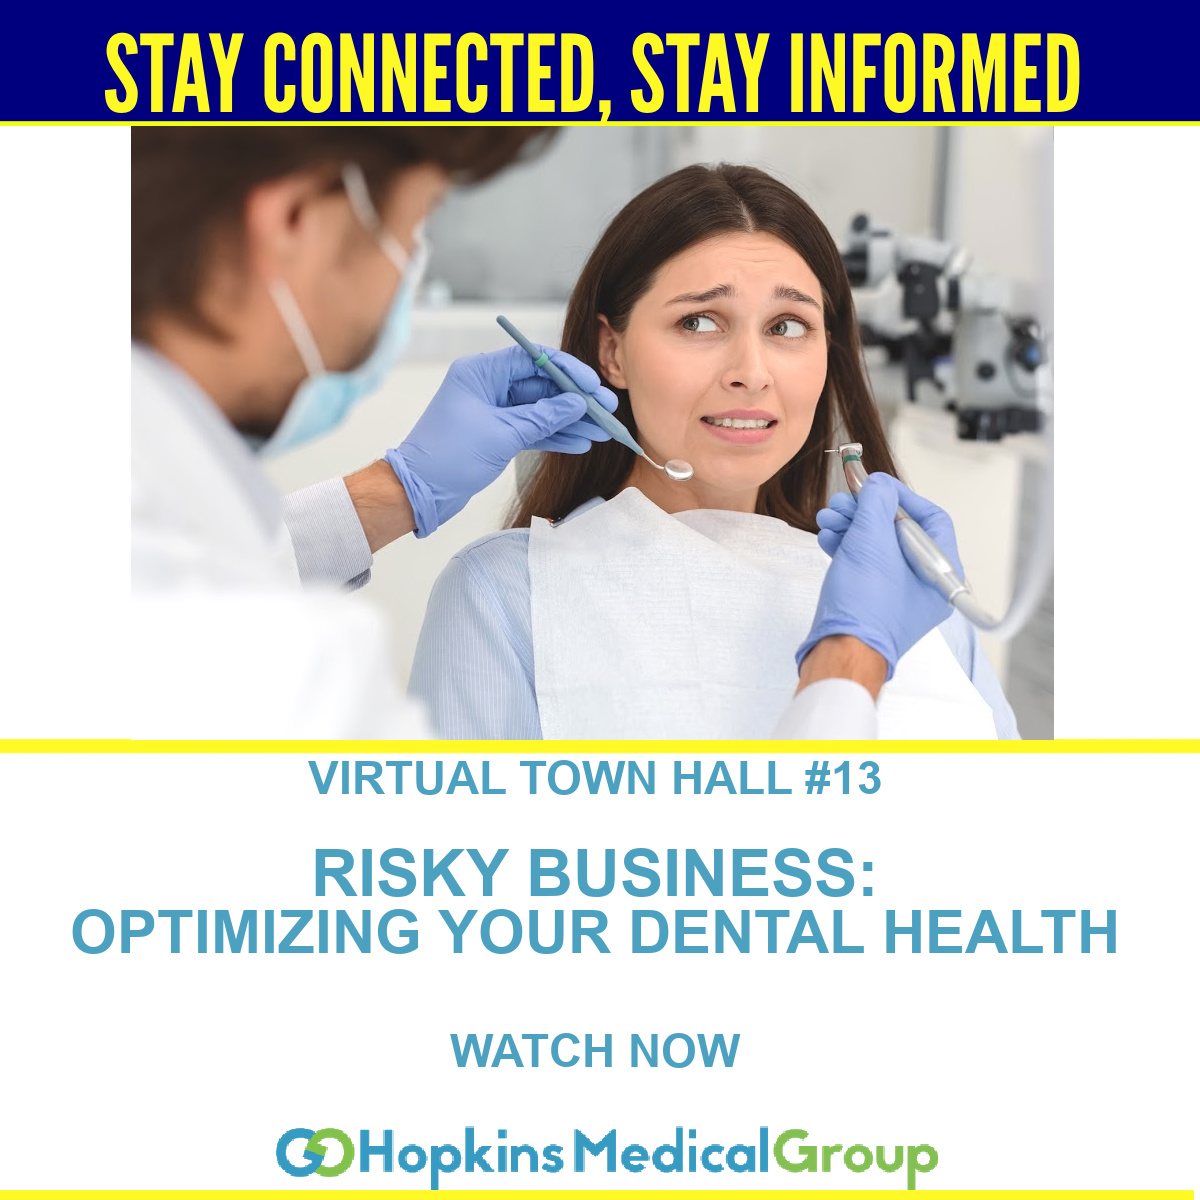 Town Hall #13 Dental Watch Now